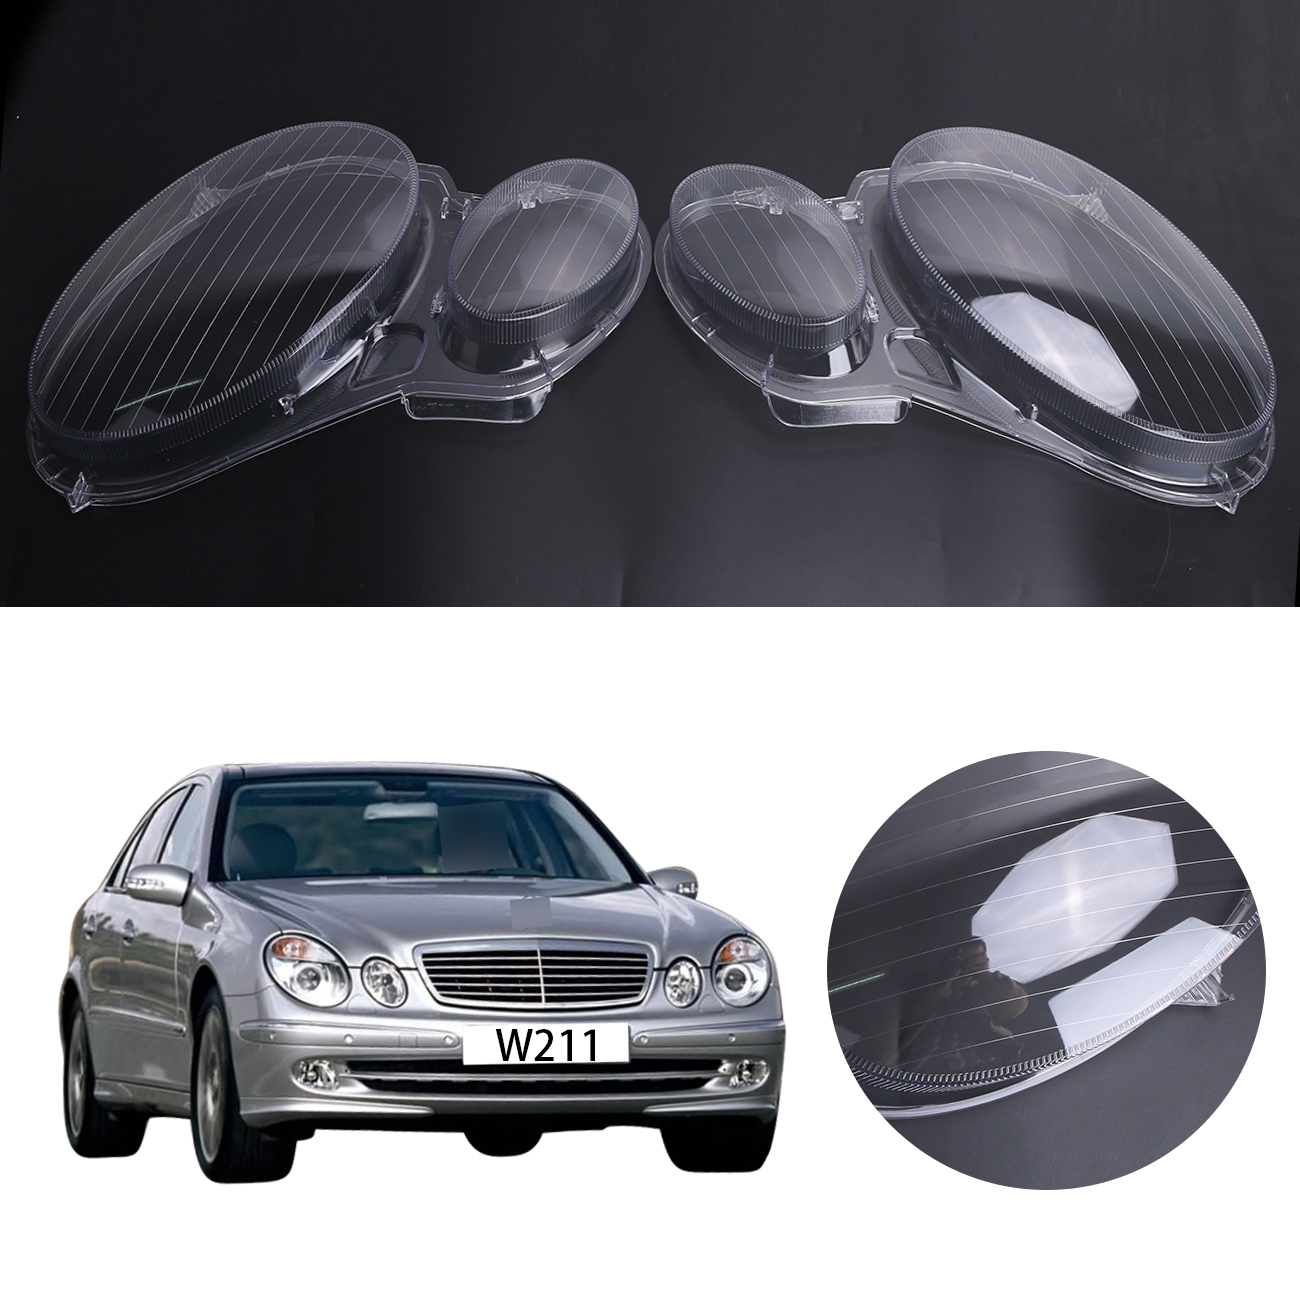 2x Transparent Housing Headlight Lens Shell Cover Lamp Assembly For Mercedes Benz E-CLASS W211 E320 E350 E300 2006 - 2008 #PD554